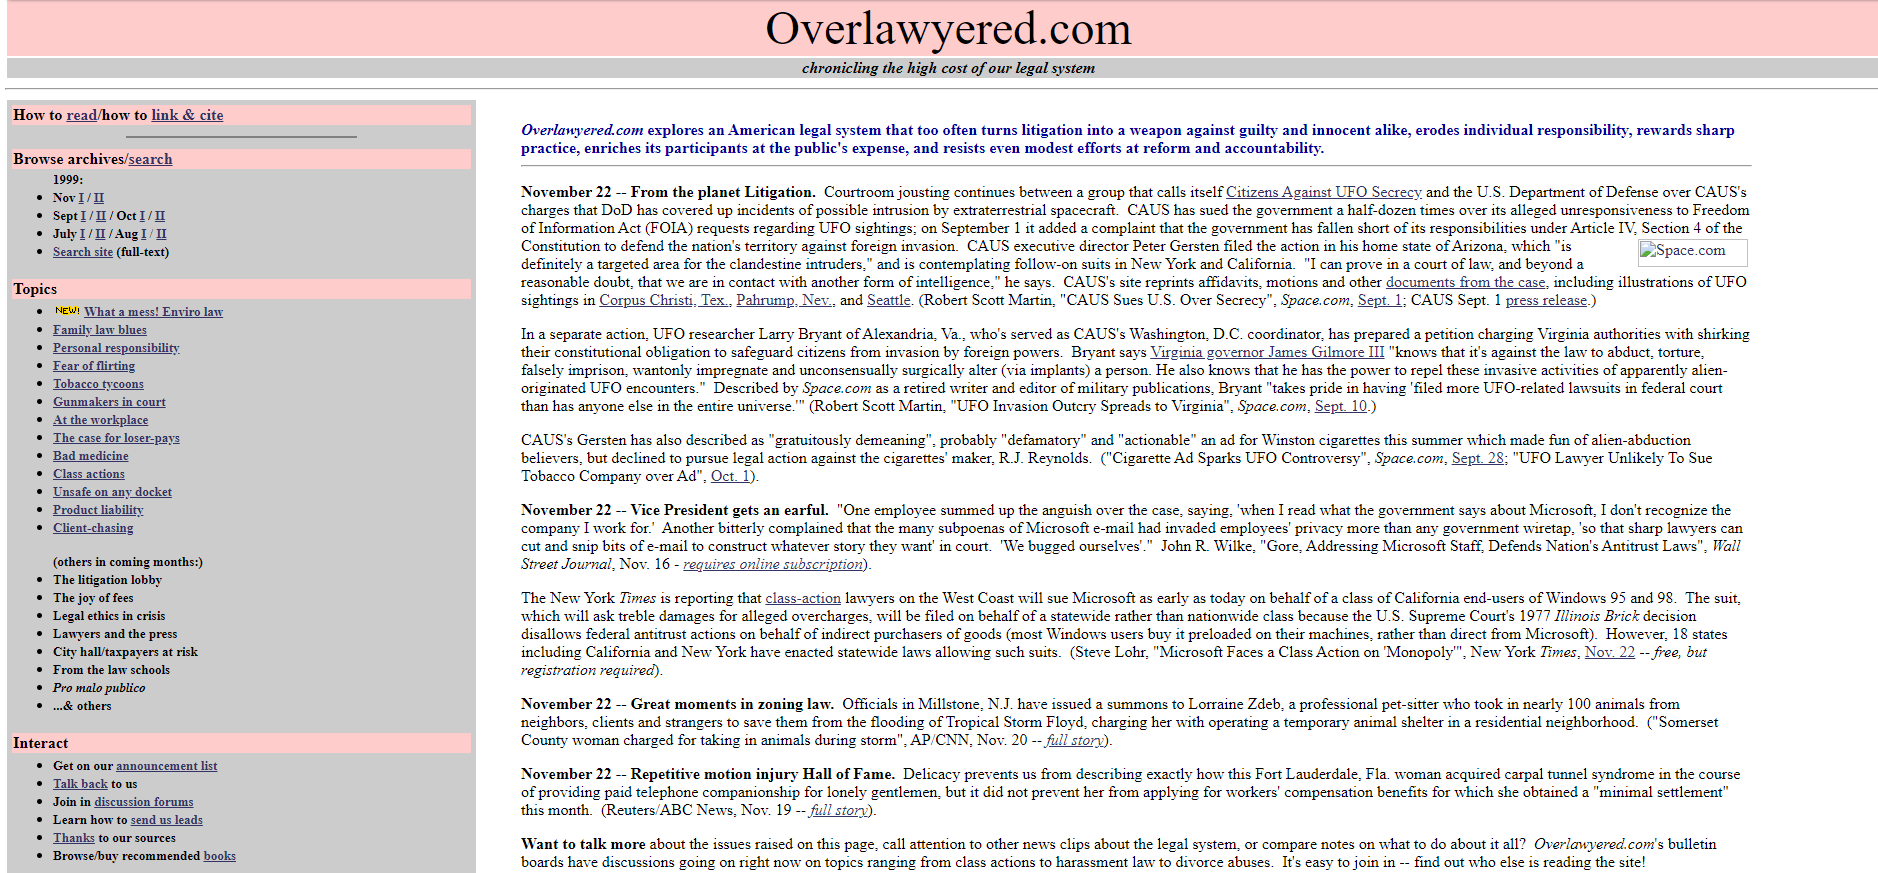 Overlawyered archive image